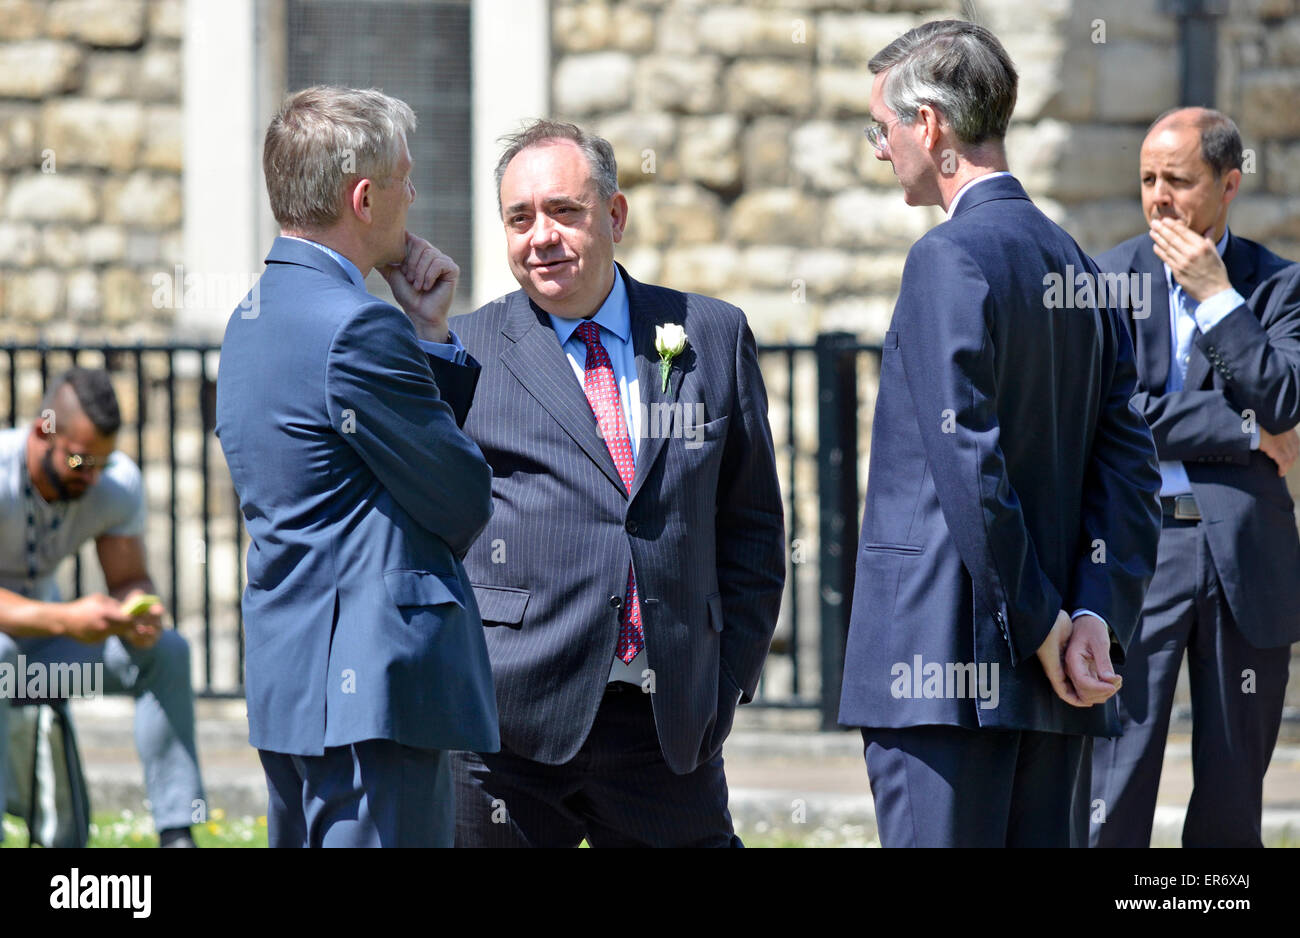 London. May 27th 2015. Alex Salmond talking to Jacob Rees-Mogg on College Green, Westminster - Stock Image